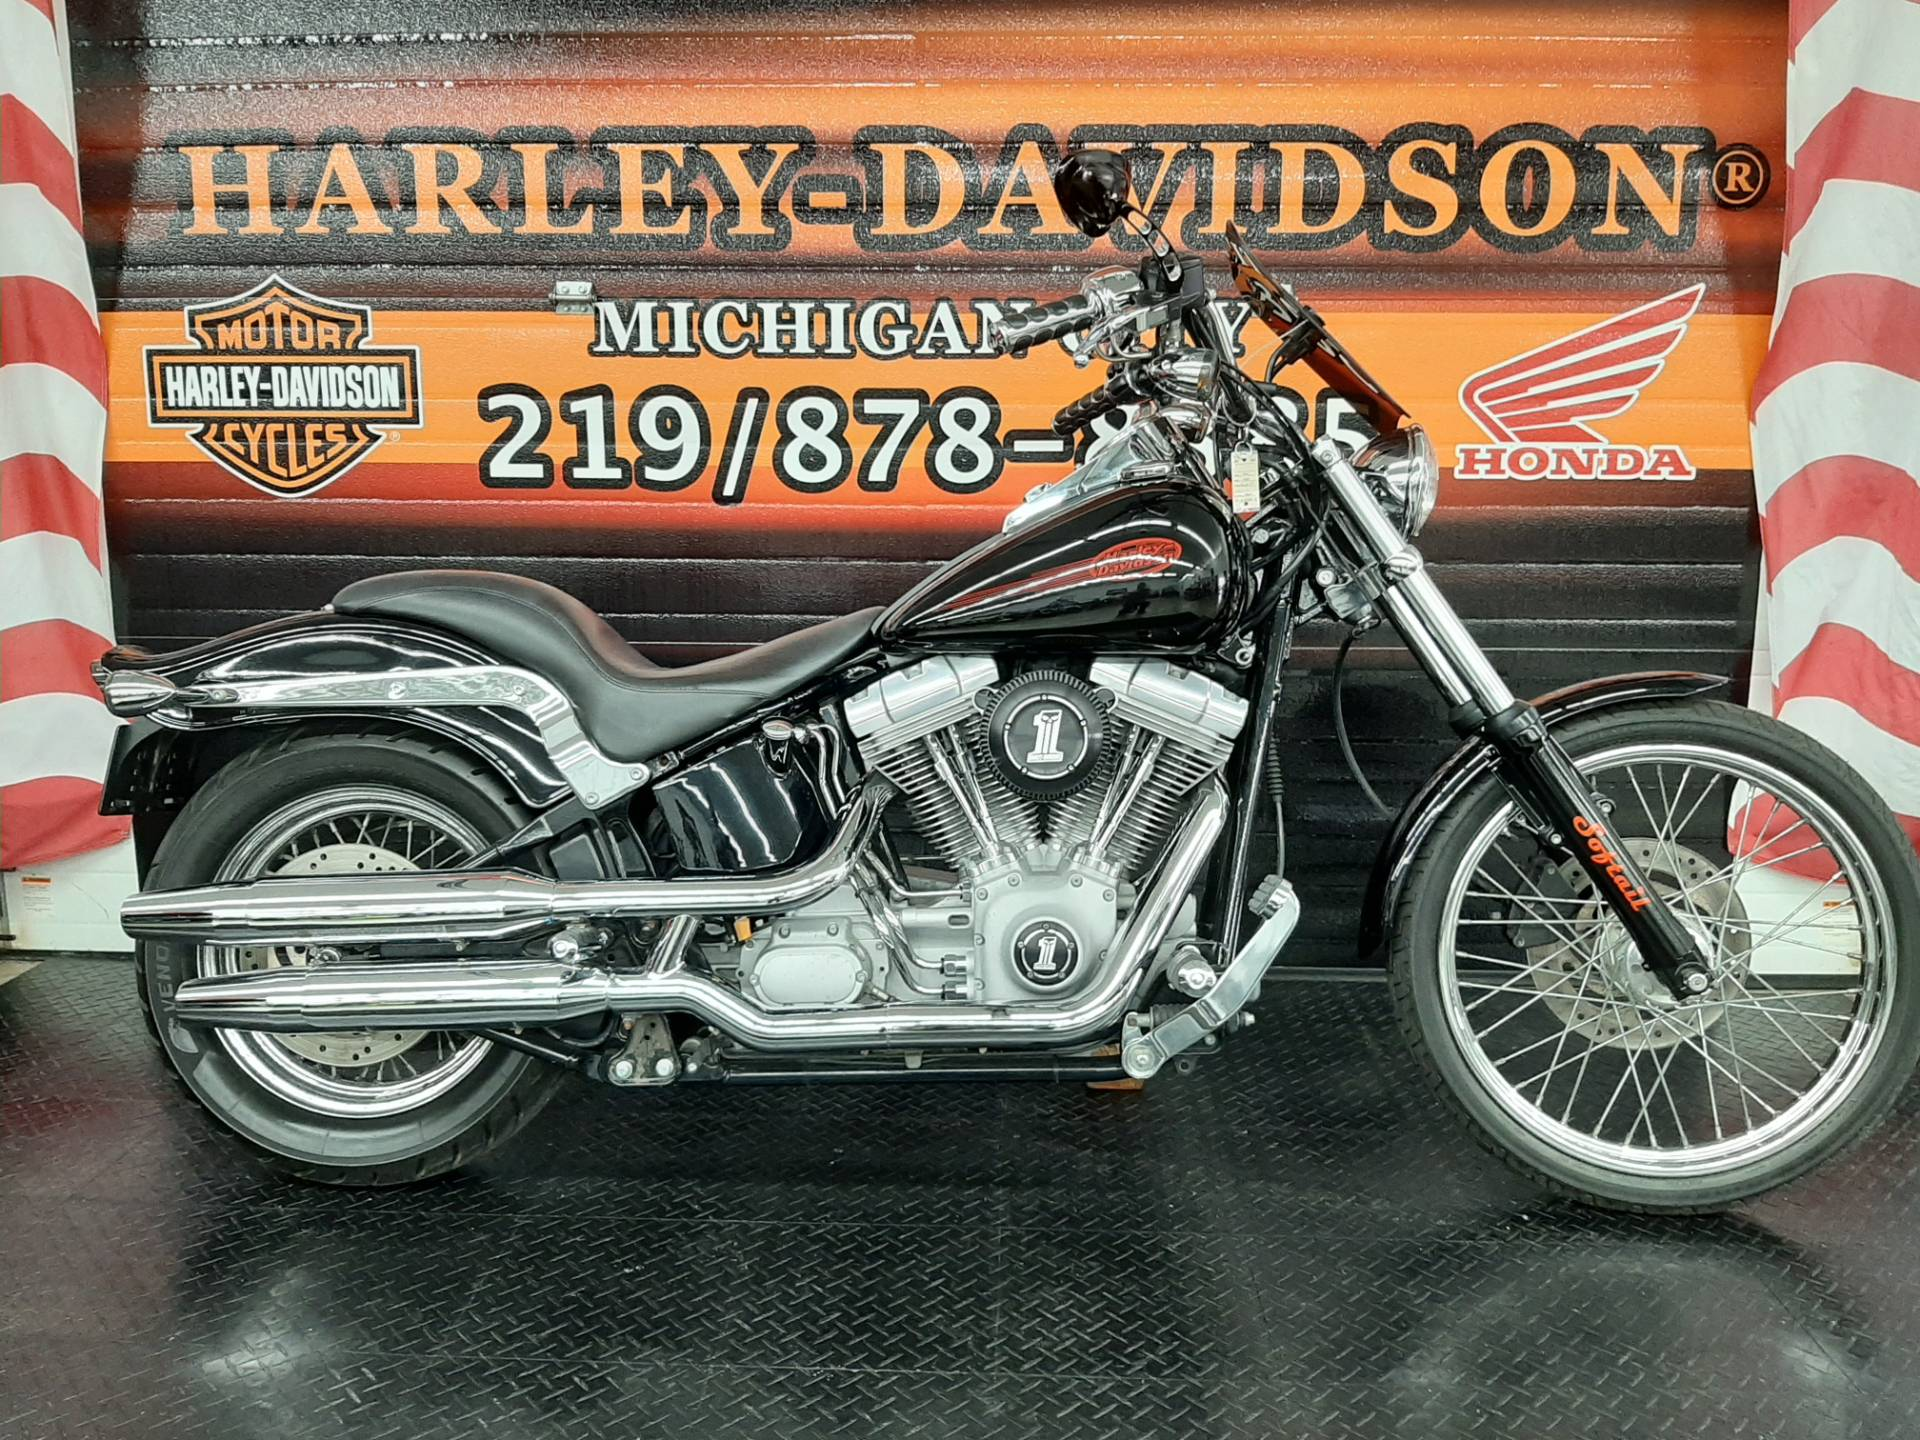 2004 Harley-Davidson FXST/FXSTI Softail® Standard in Michigan City, Indiana - Photo 1